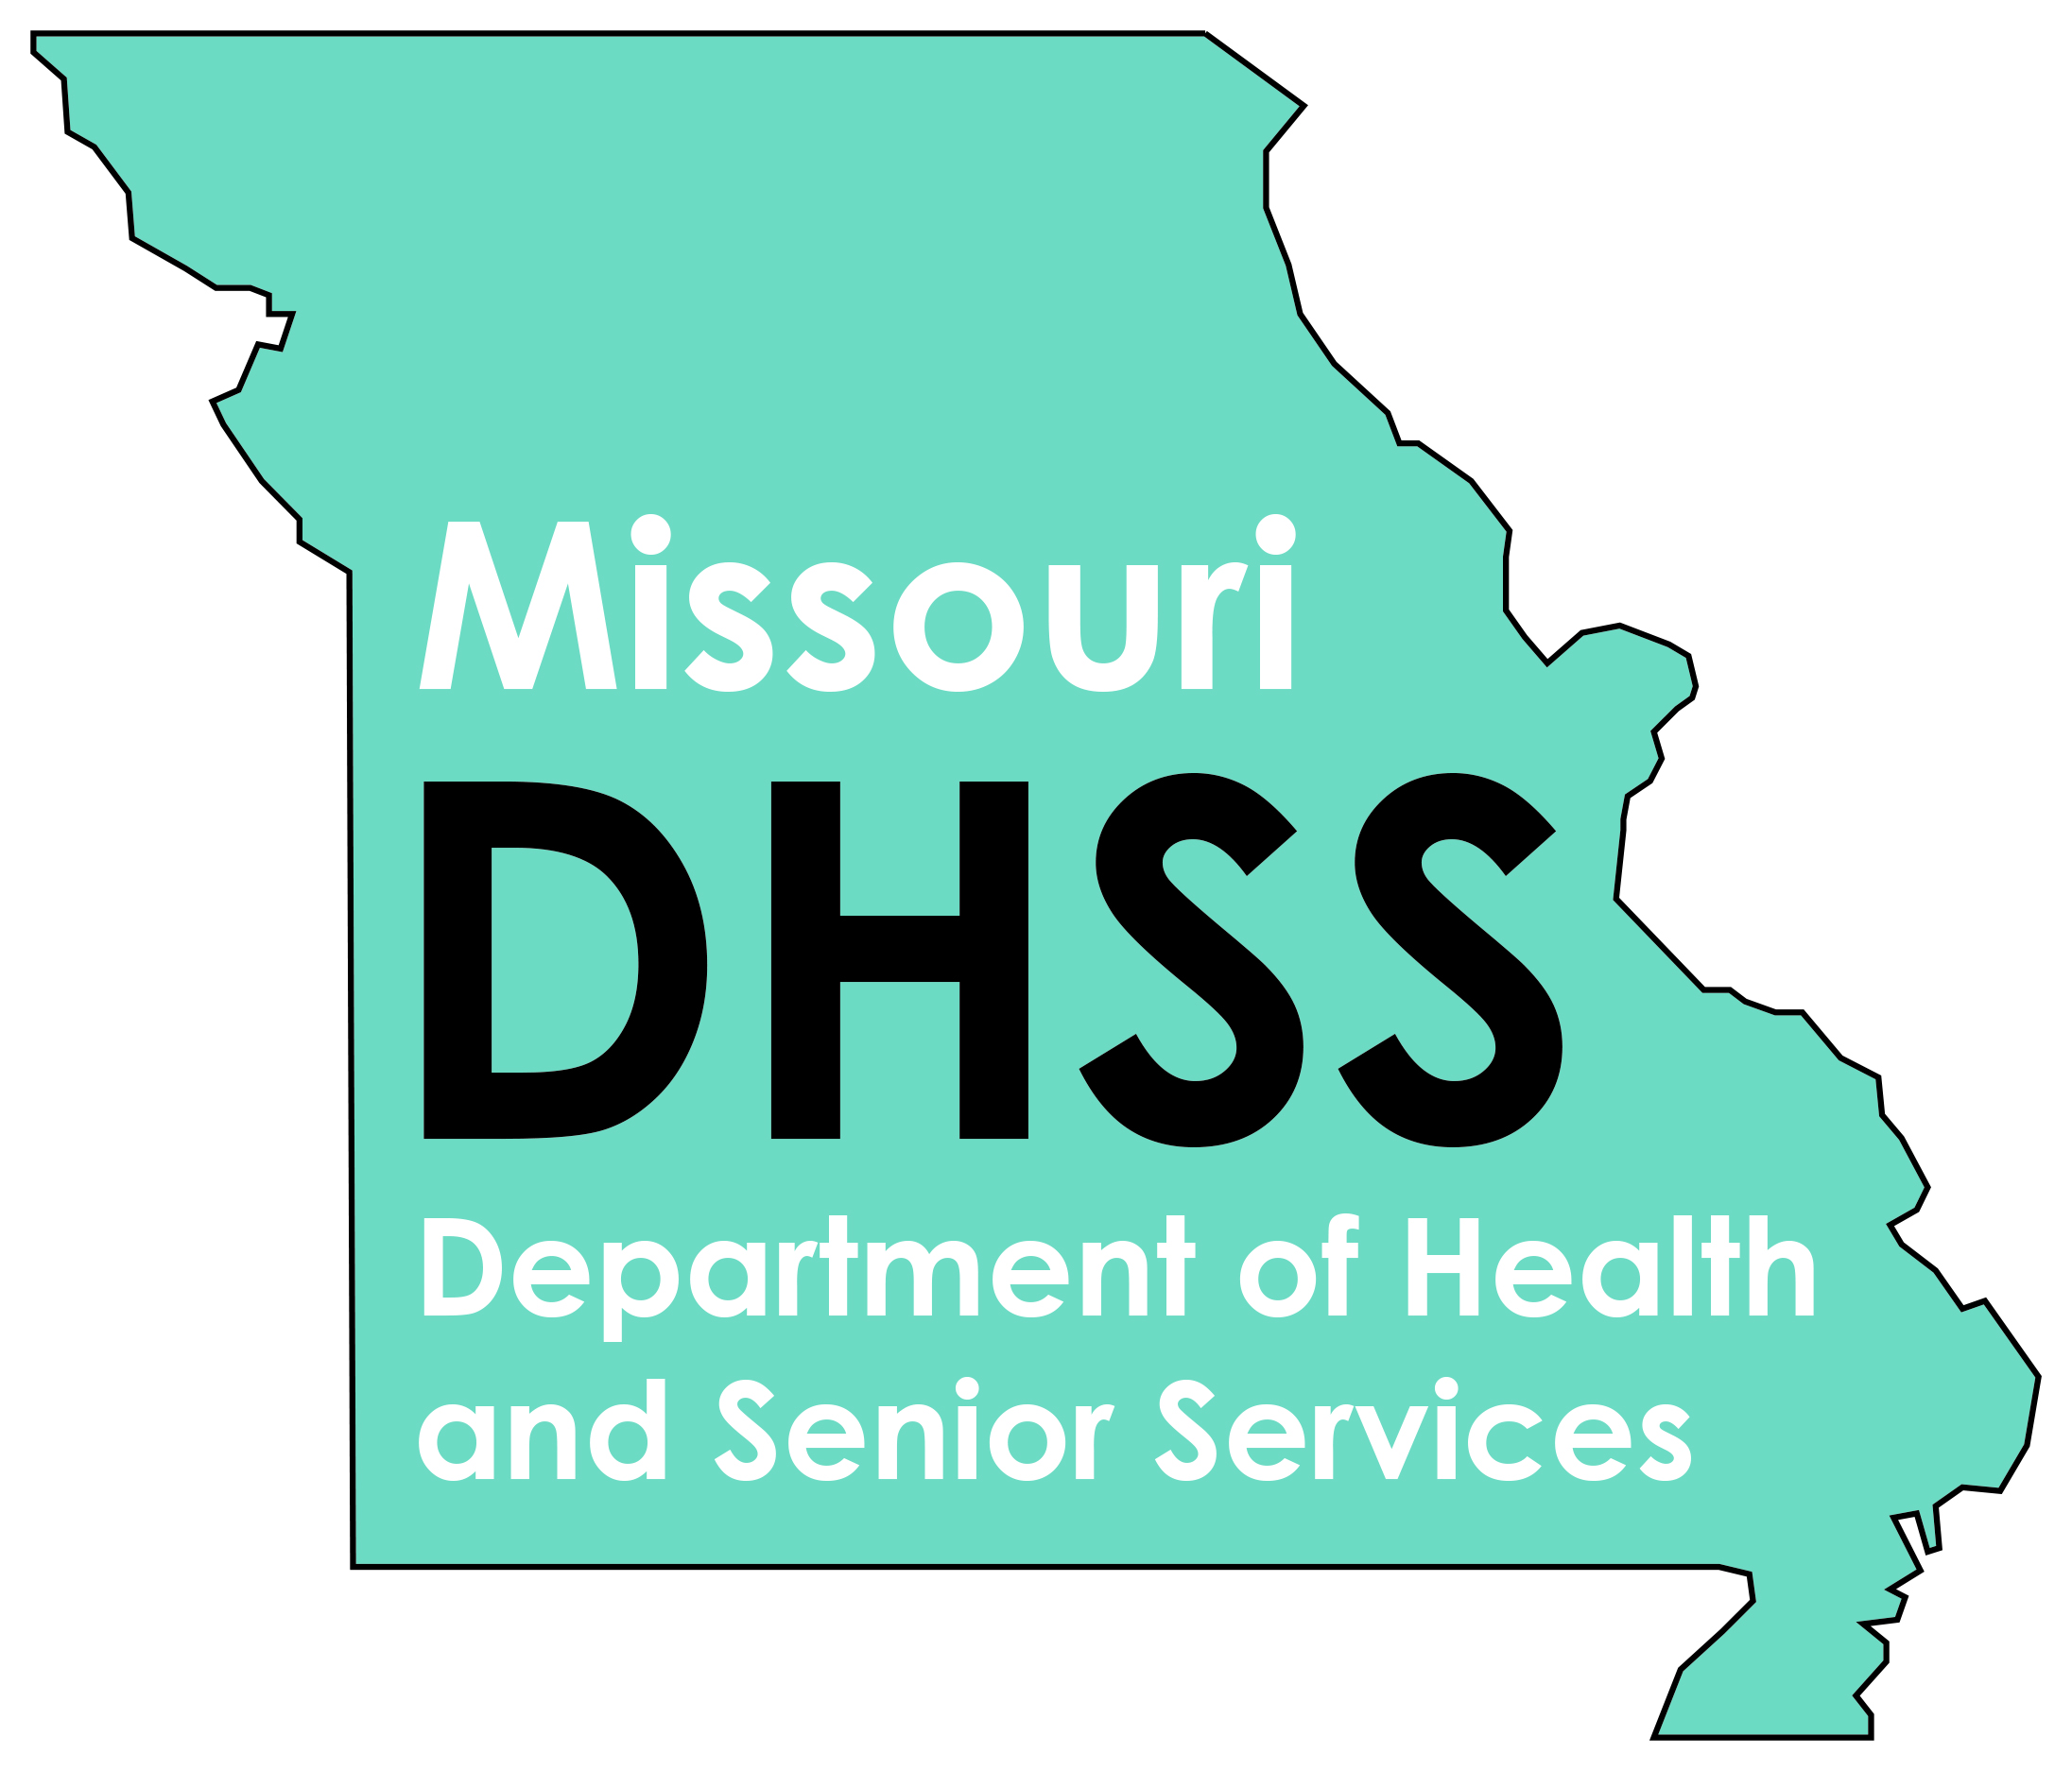 Missouri Department of Health and Senior Services Resources